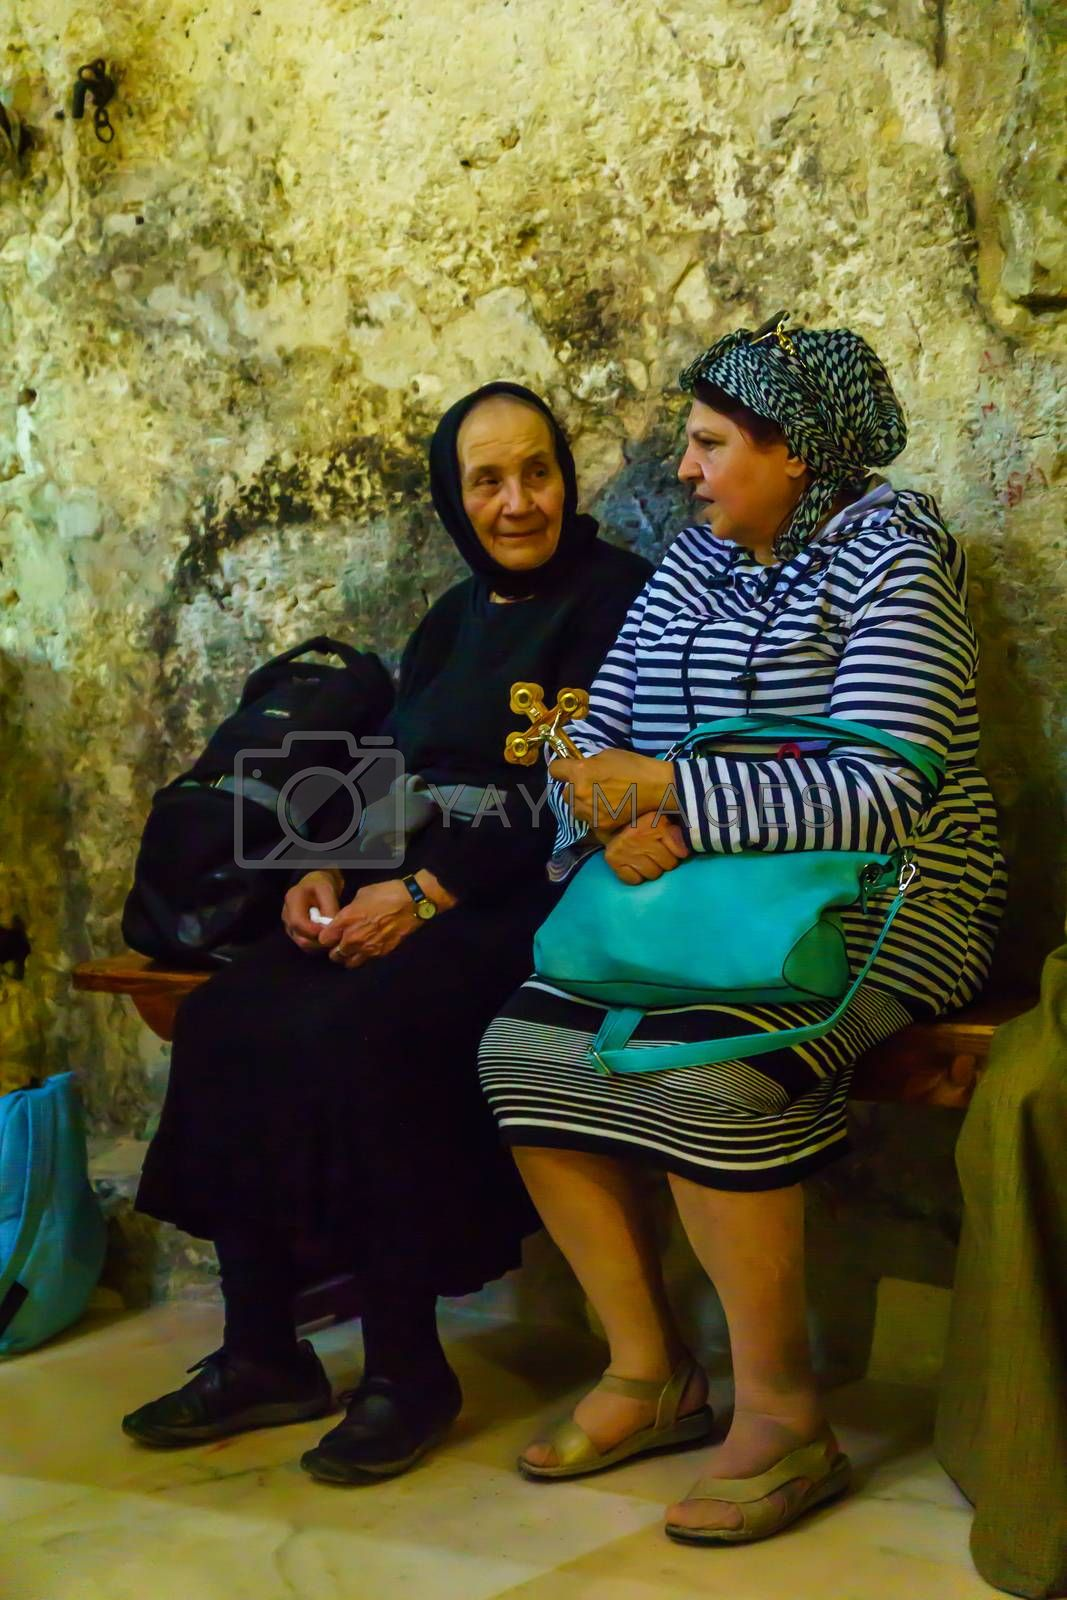 Jerusalem, Israel - April 6, 2018: Orthodox good Friday scene in the church of the holy sepulcher, with pilgrims. The old city of Jerusalem, Israel